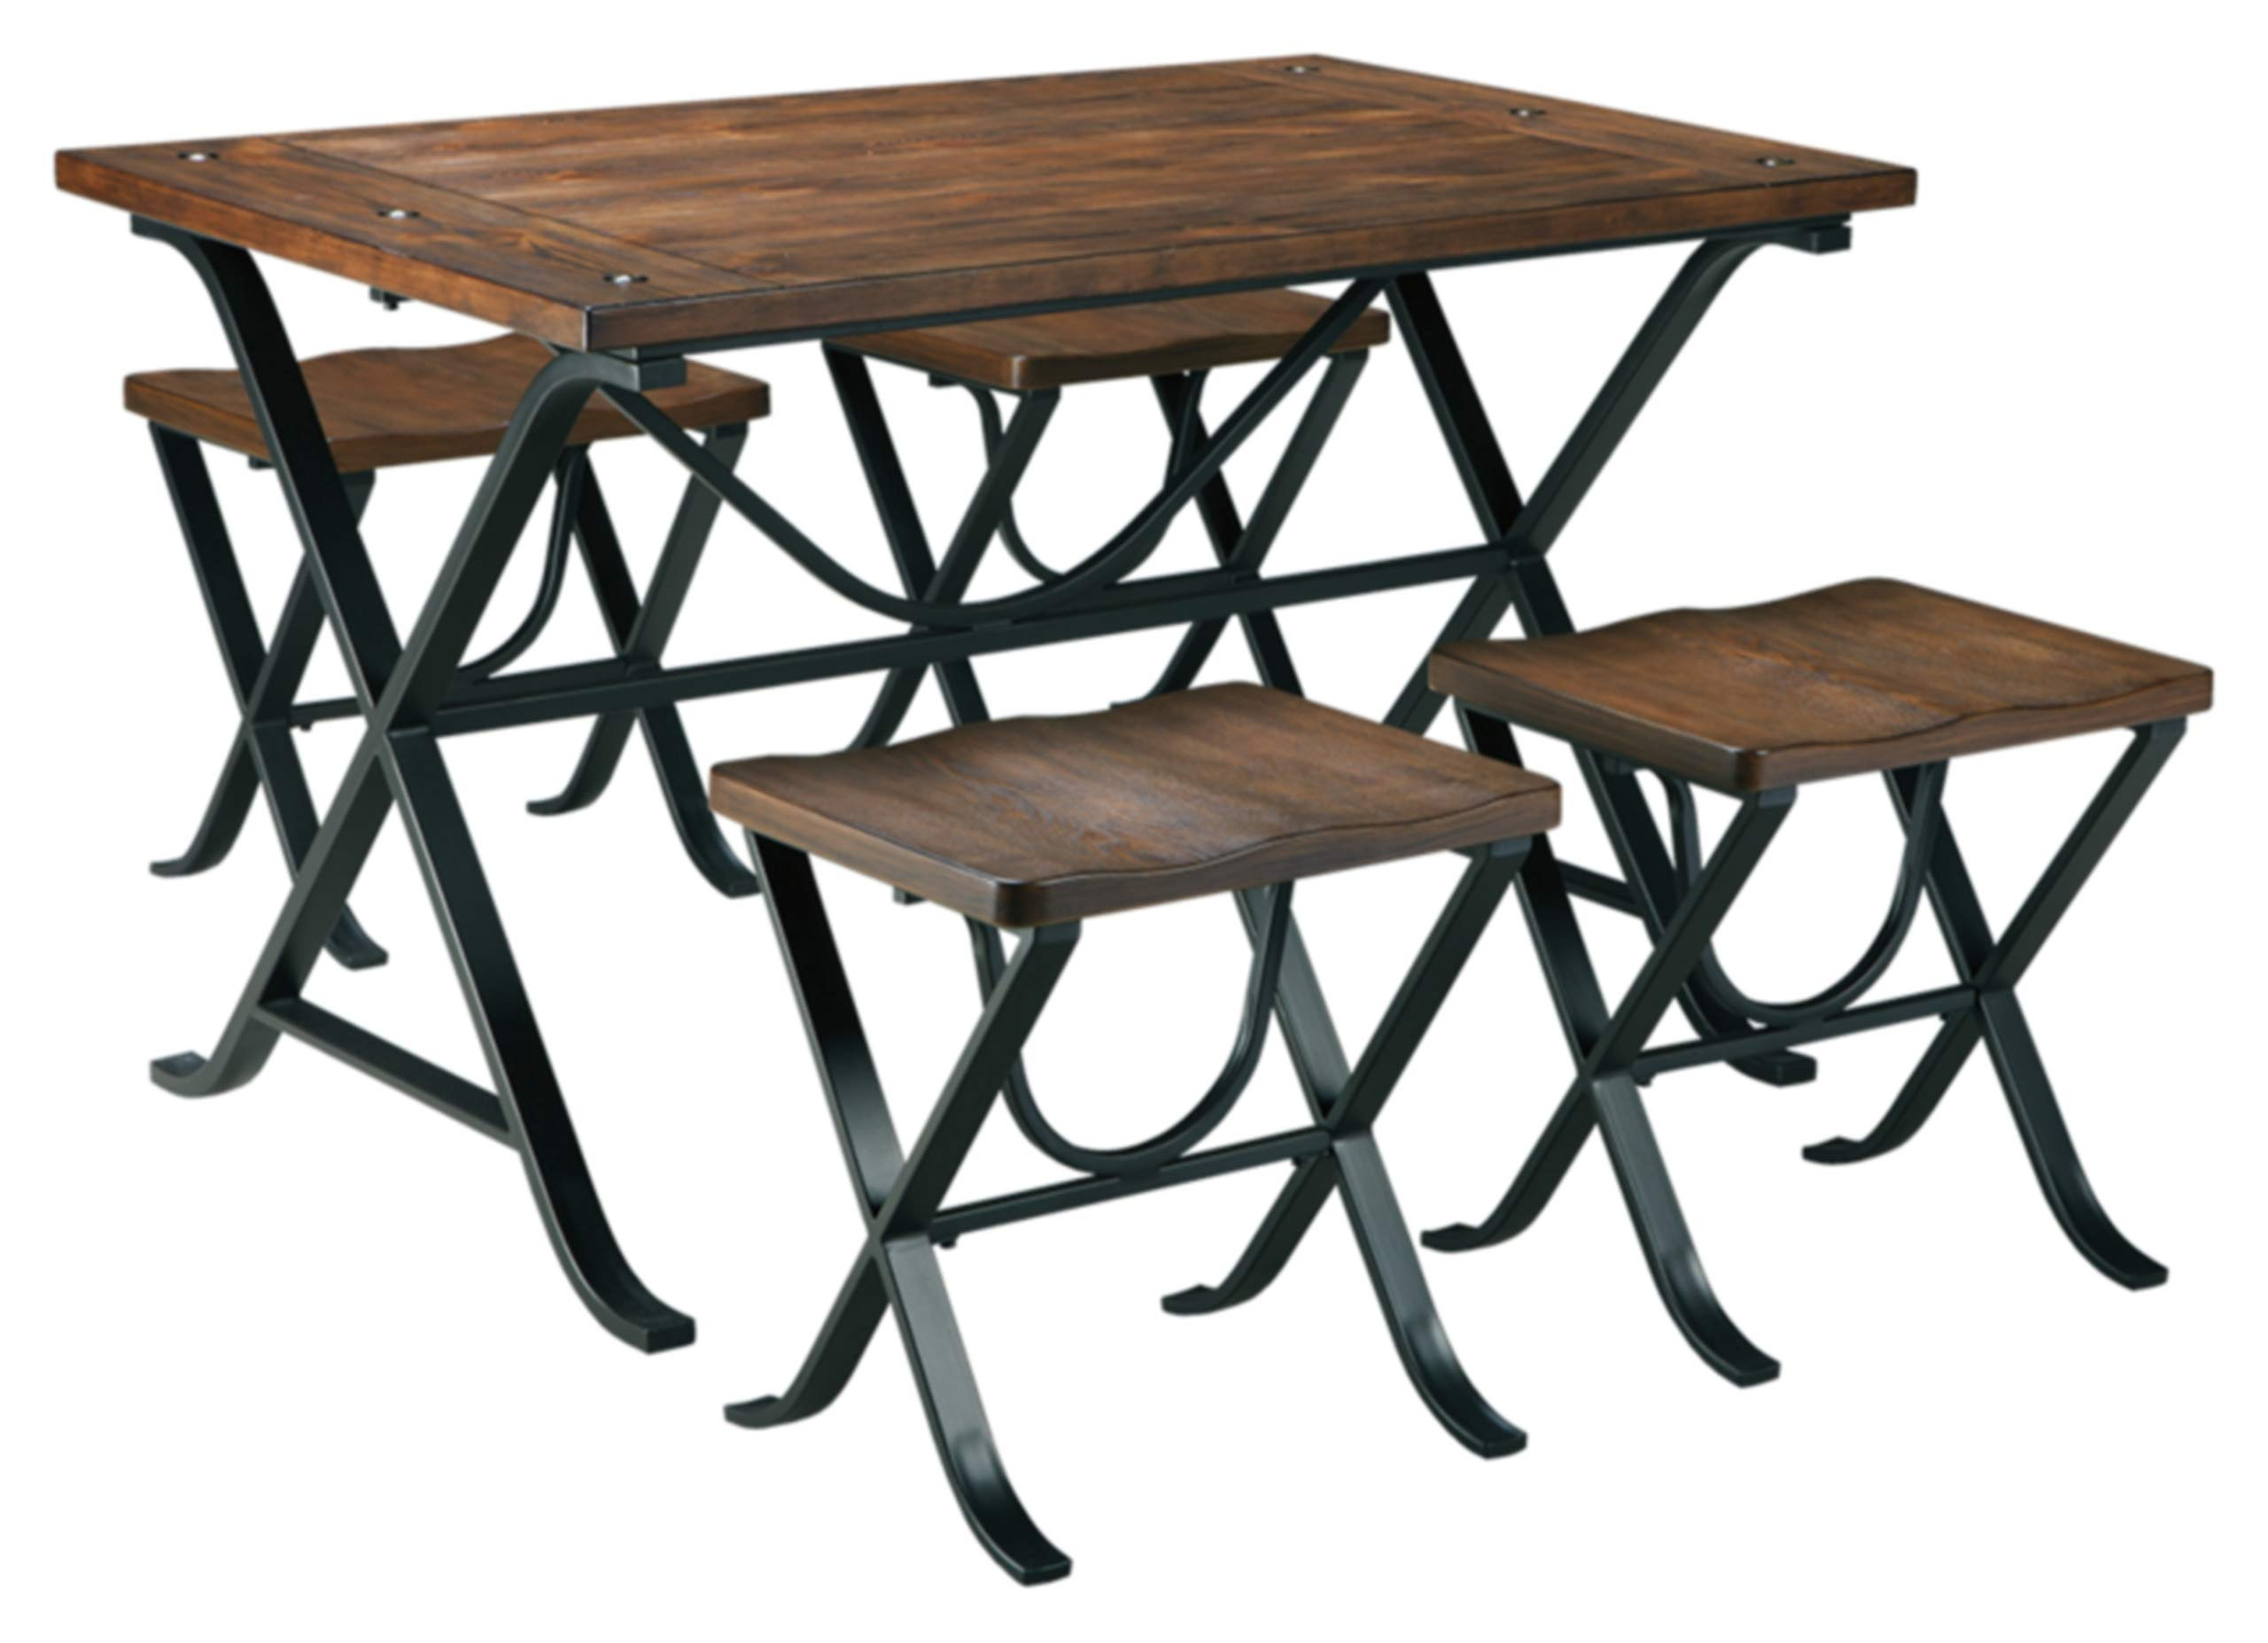 Ashley Furniture Signature Design - Freimore Dining Room Table and Stools - Set of 5 - Medium Brown Wood Top and Black Metal Legs by Signature Design by Ashley